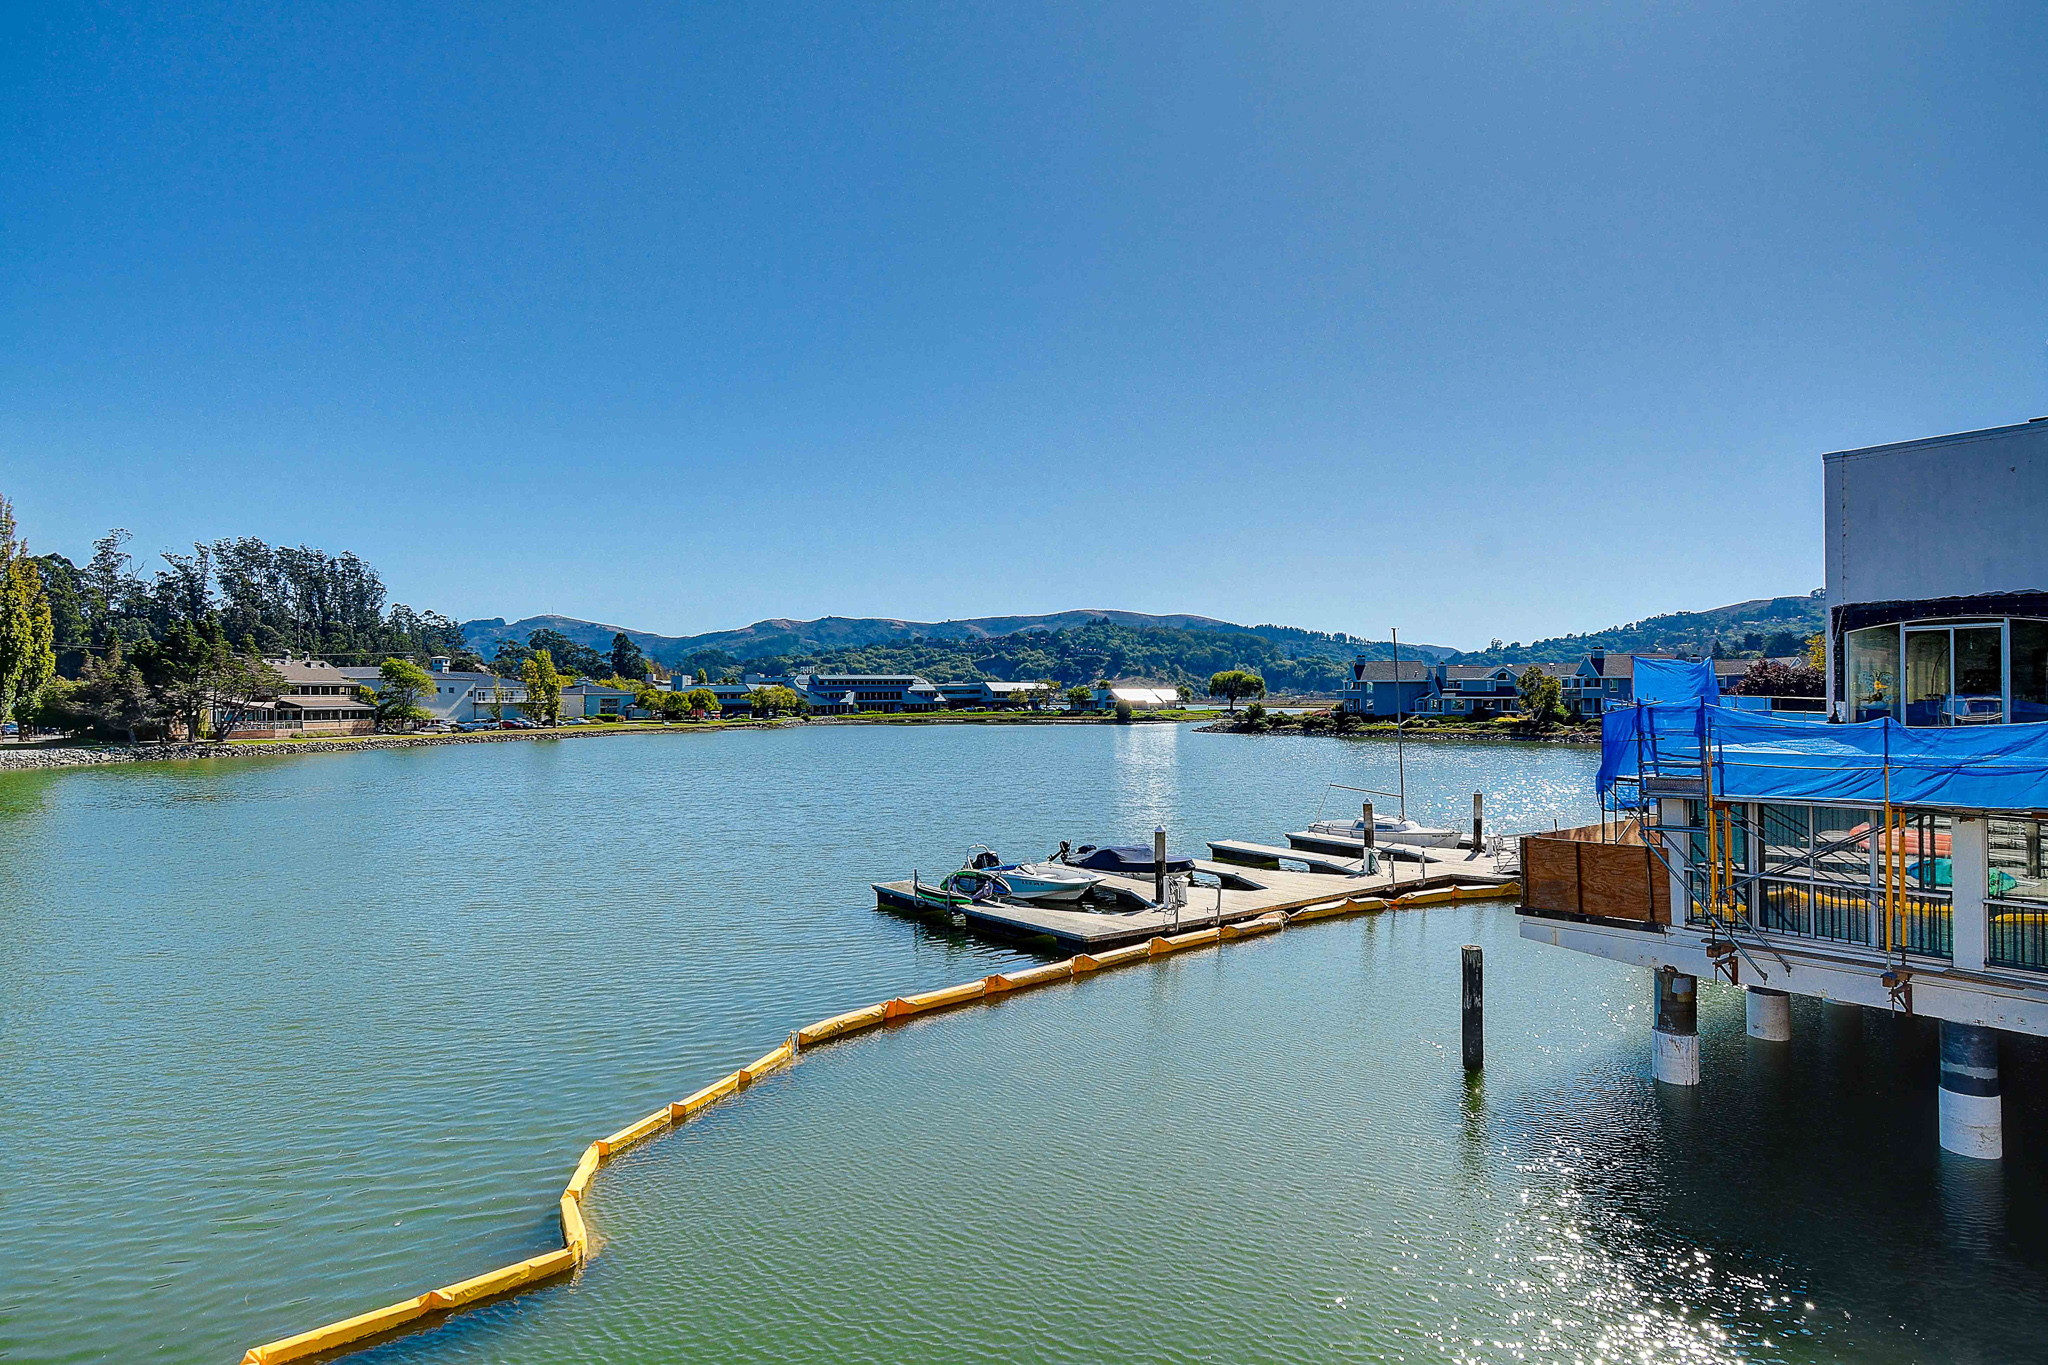 3223 Shelter Bay Avenue-17 Mill Valley Top Realtor - Allie Fornesi on Own Marin County's #1 Real Estate Team.jpg